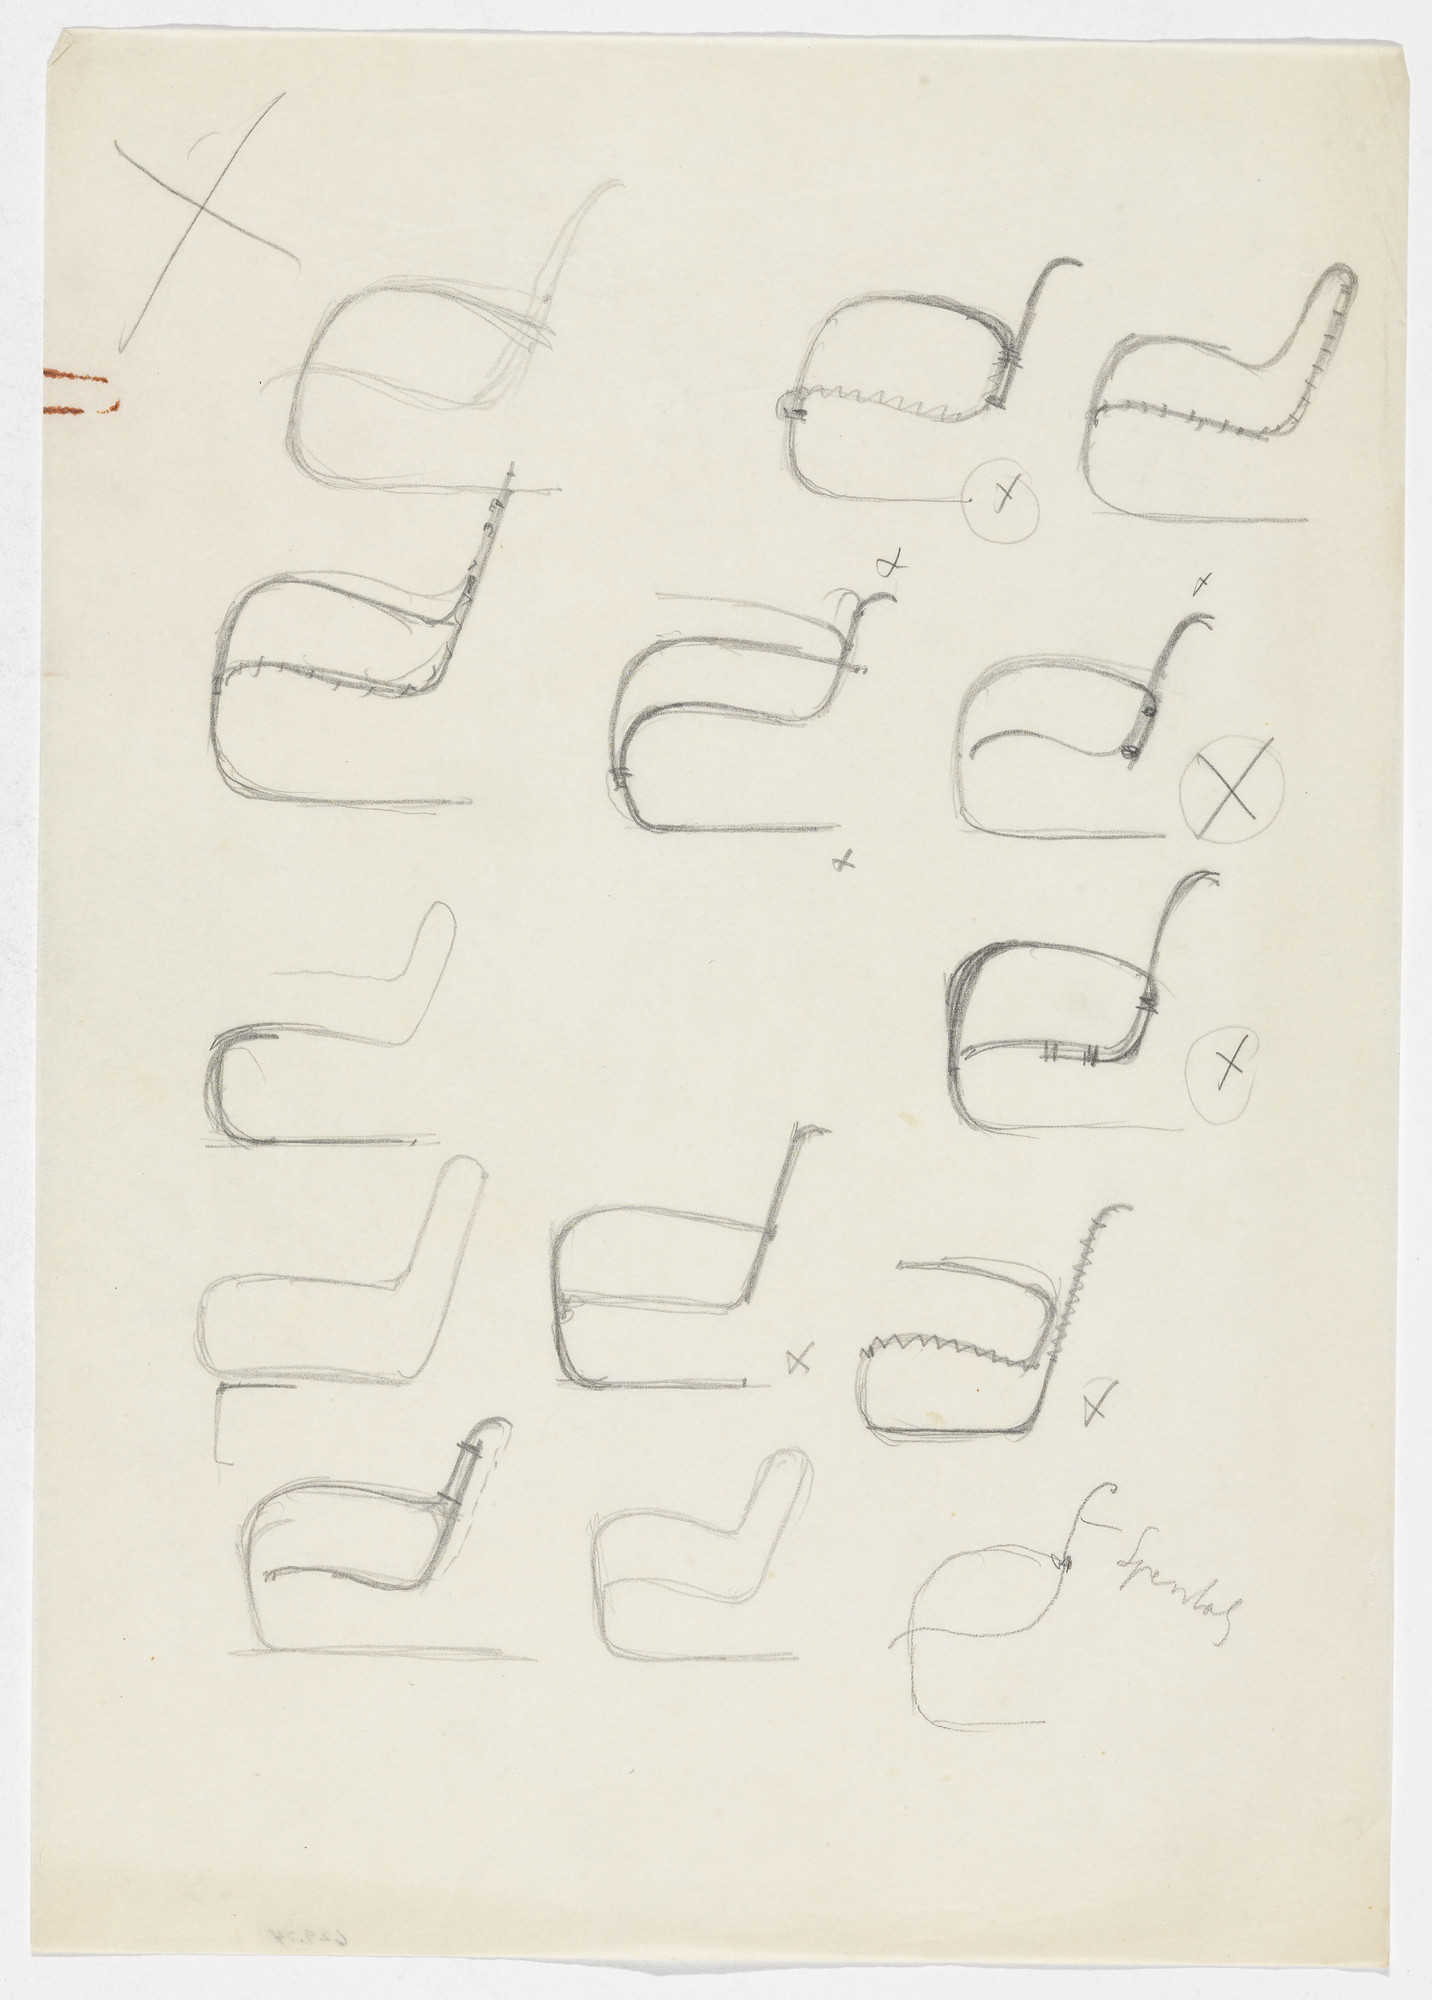 Ludwig Mies van der Rohe. Lounge Chair with and without Arms (Fourteen elevation sketches). 1934